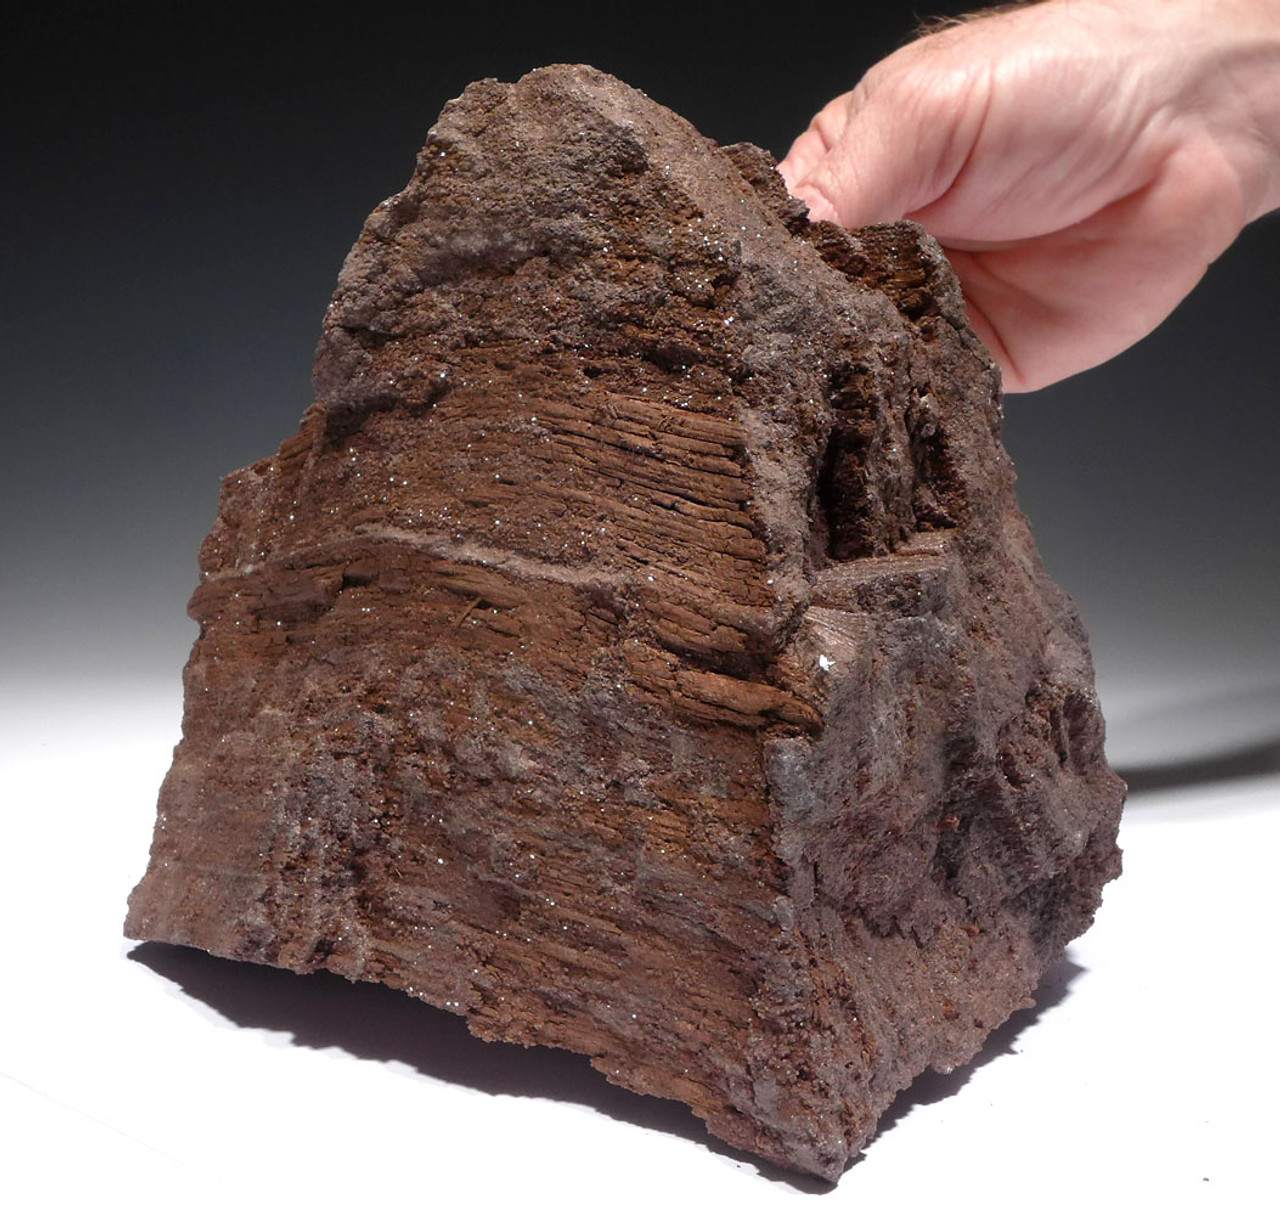 RARE TRIASSIC PERMINERALIZED LOG OF PETRIFIED WOOD WITH SPARKLING DRUSY CRYSTALS FROM GERMAN COAL DEPOSIT *PL173